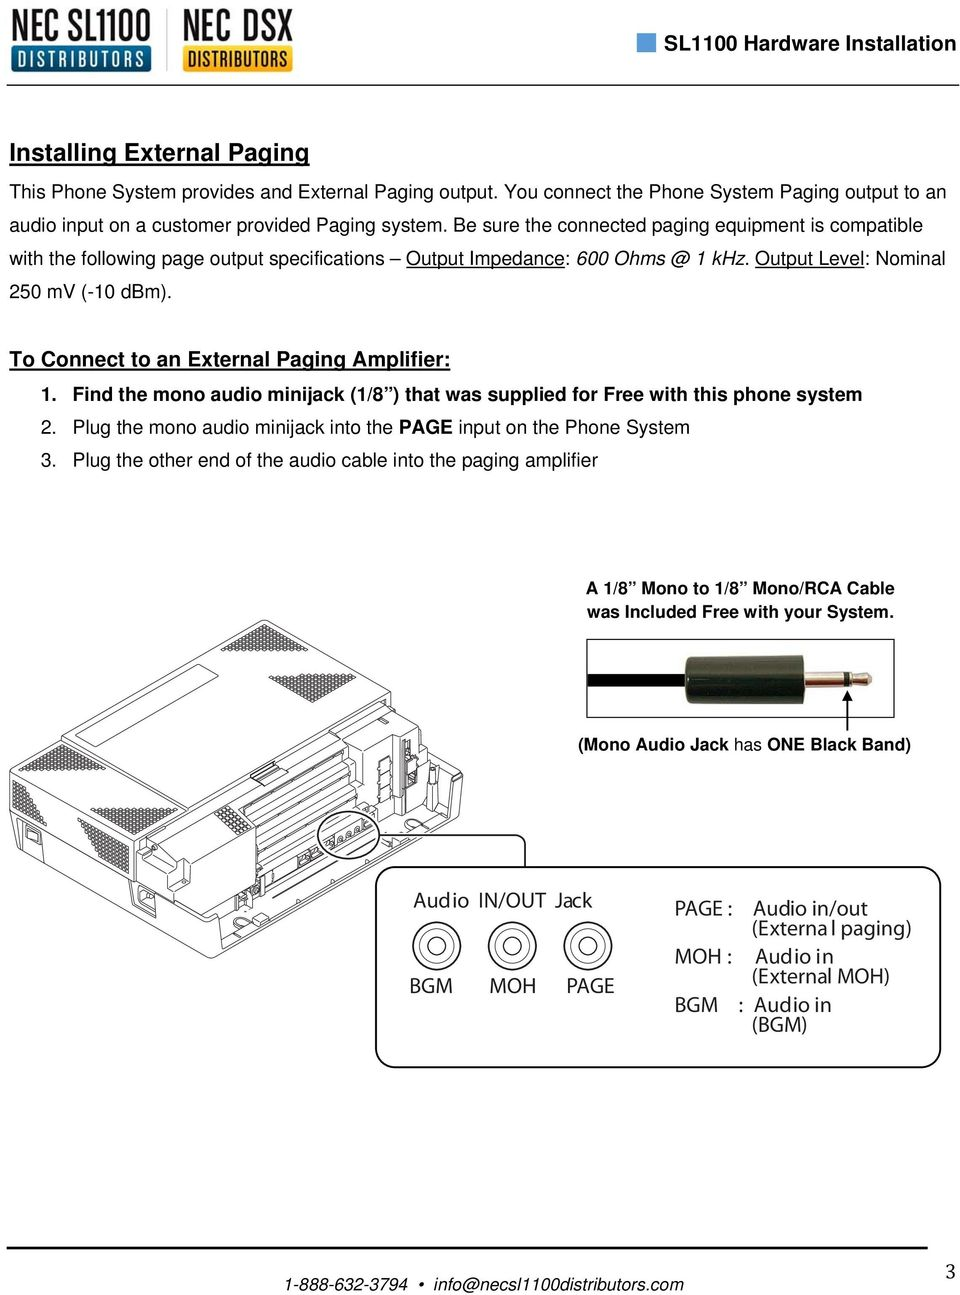 Be sure the connected paging equipment is compatible with the following page output specifications Output Impedance: 600 Ohms @ 1 khz. Output Level: Nominal 250 mv (-10 dbm).